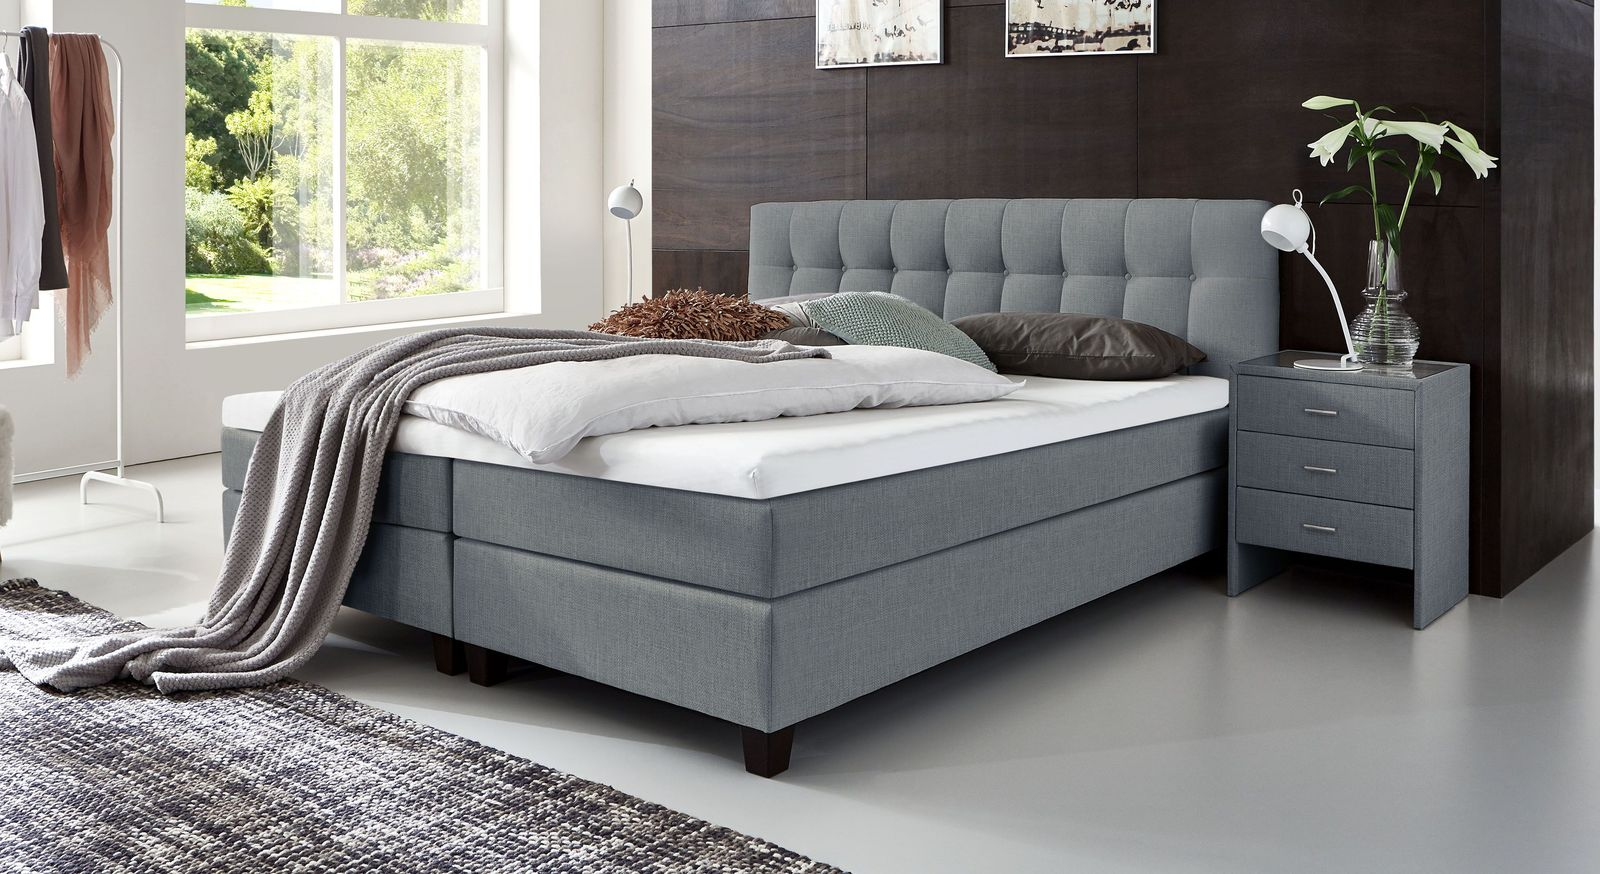 53 cm hohes Boxspringbett Luciano aus meliertem Webstoff in Blaugrau